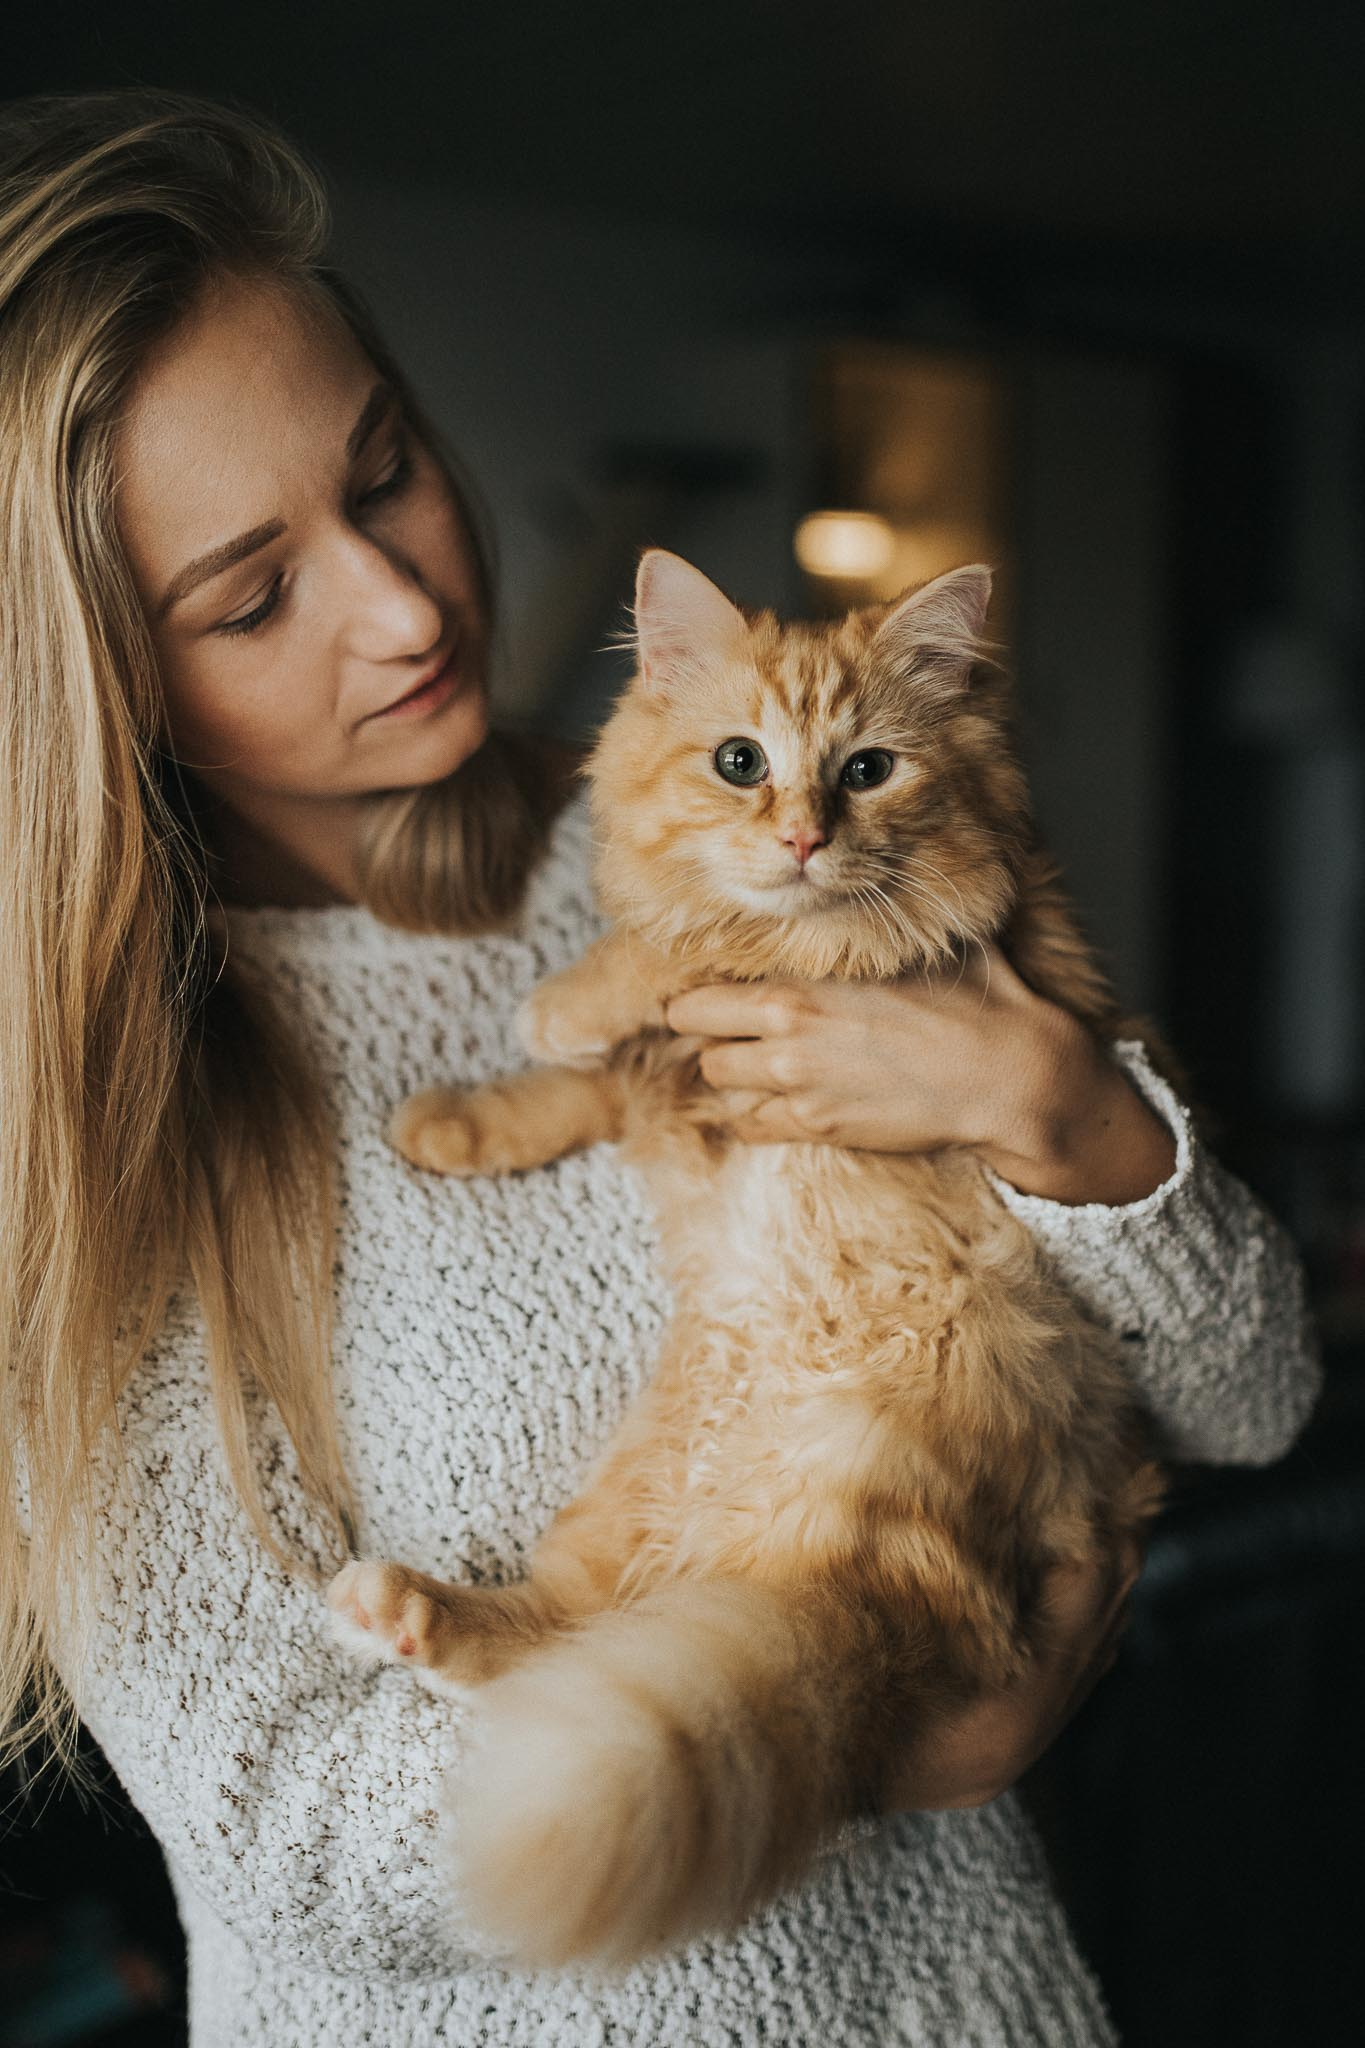 cats and their humans - Blonde Frau mit ihrem Kater auf dem Arm